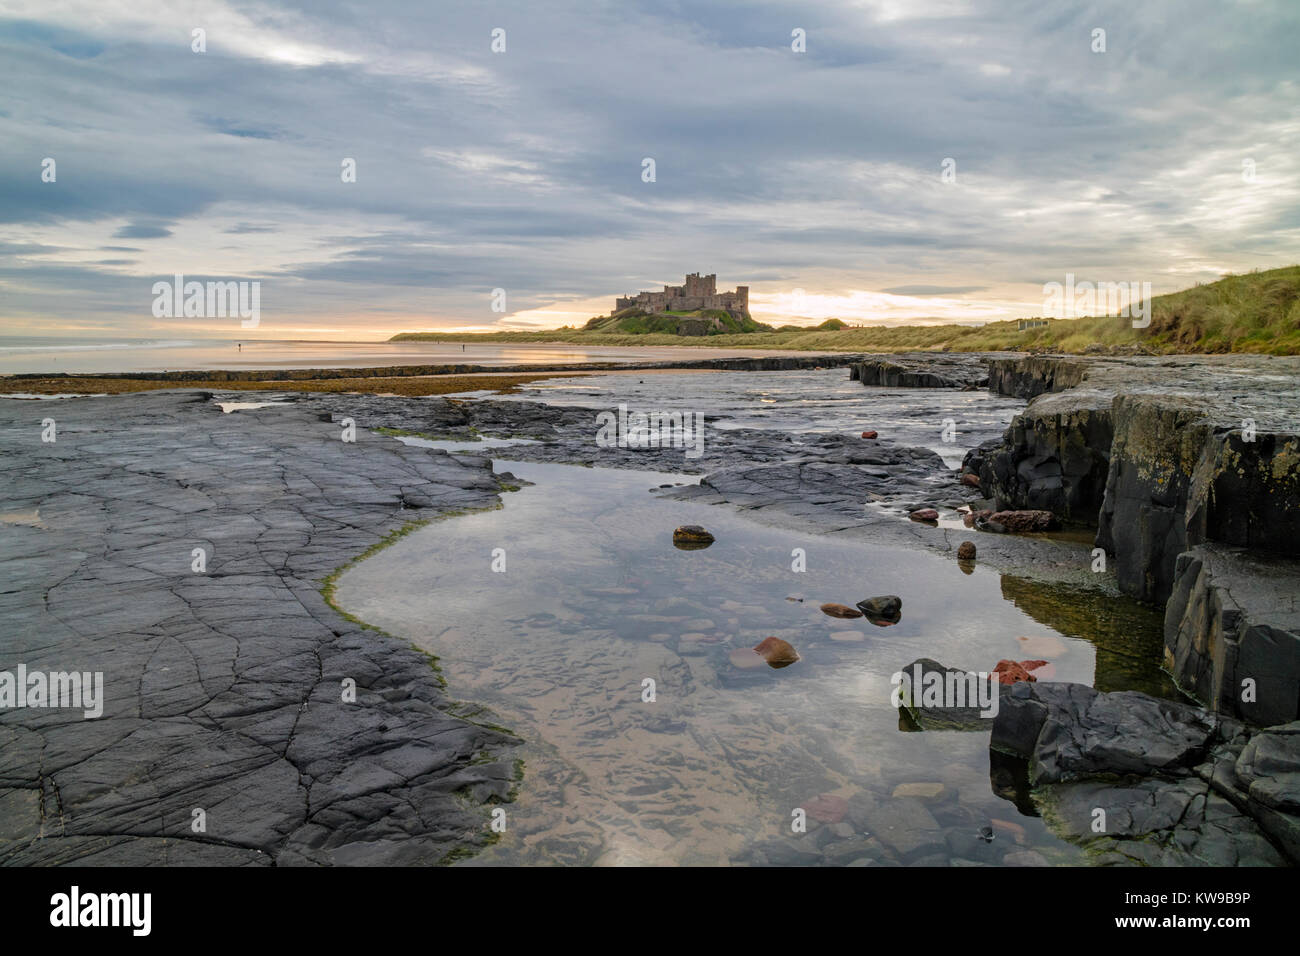 Bamburgh Castle on the Northumbrian coast, Northumberland, England, UK - Stock Image